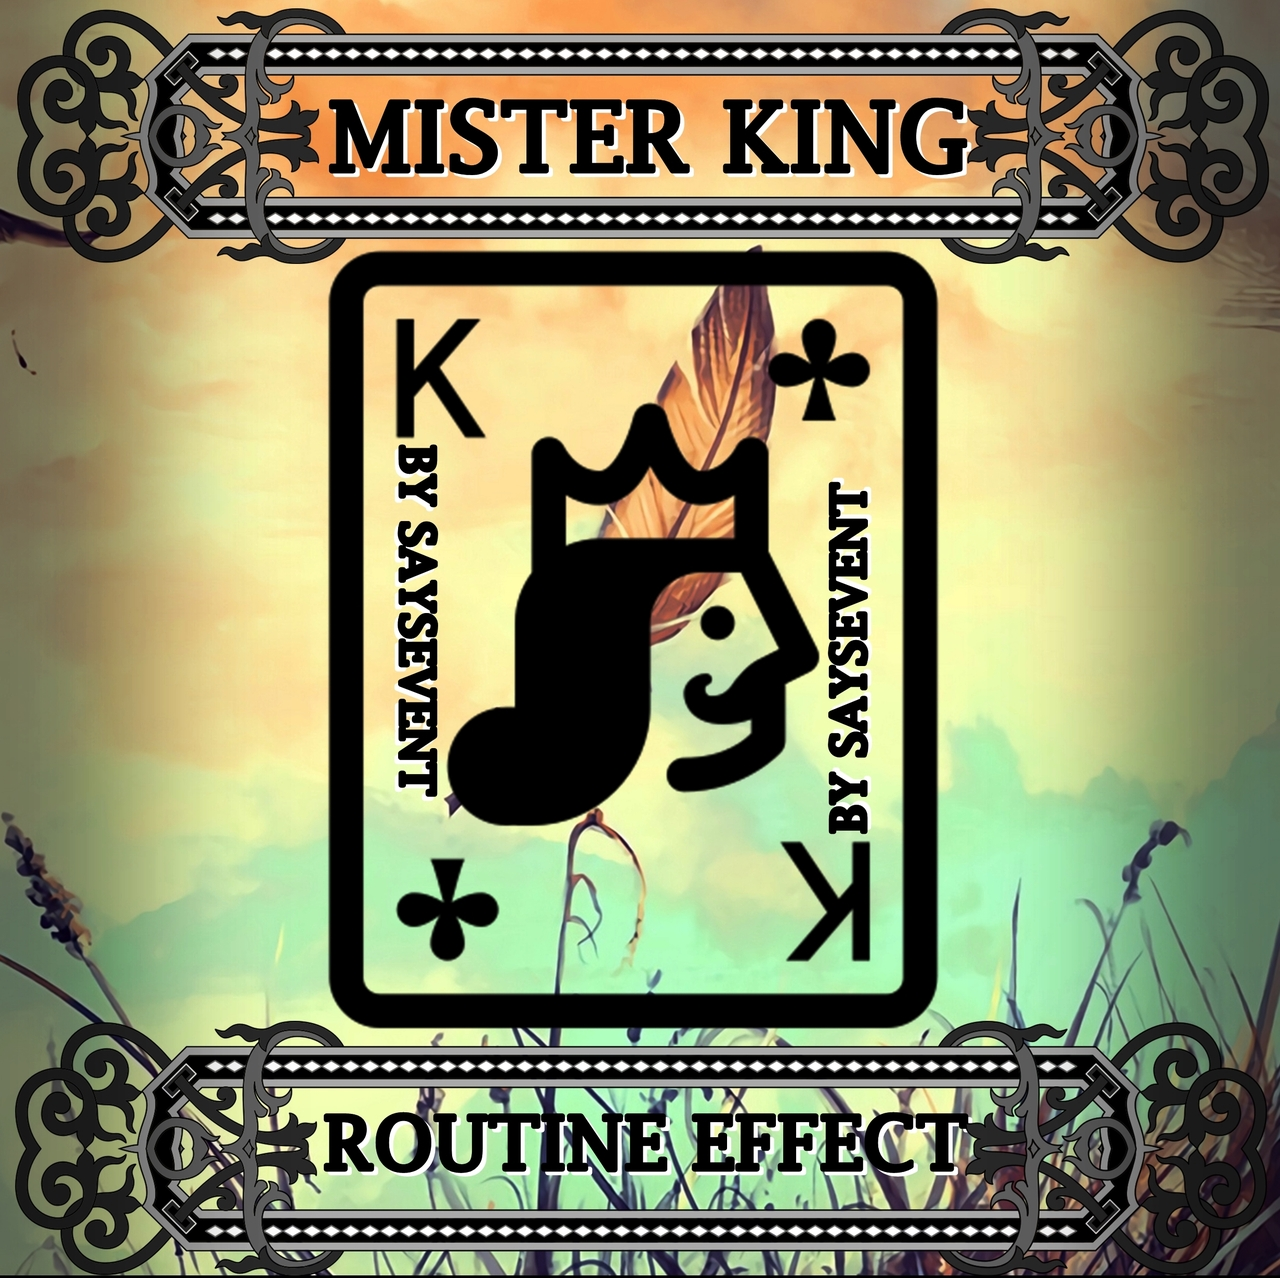 Mister King by SaysevenT (MP4 Video Download)